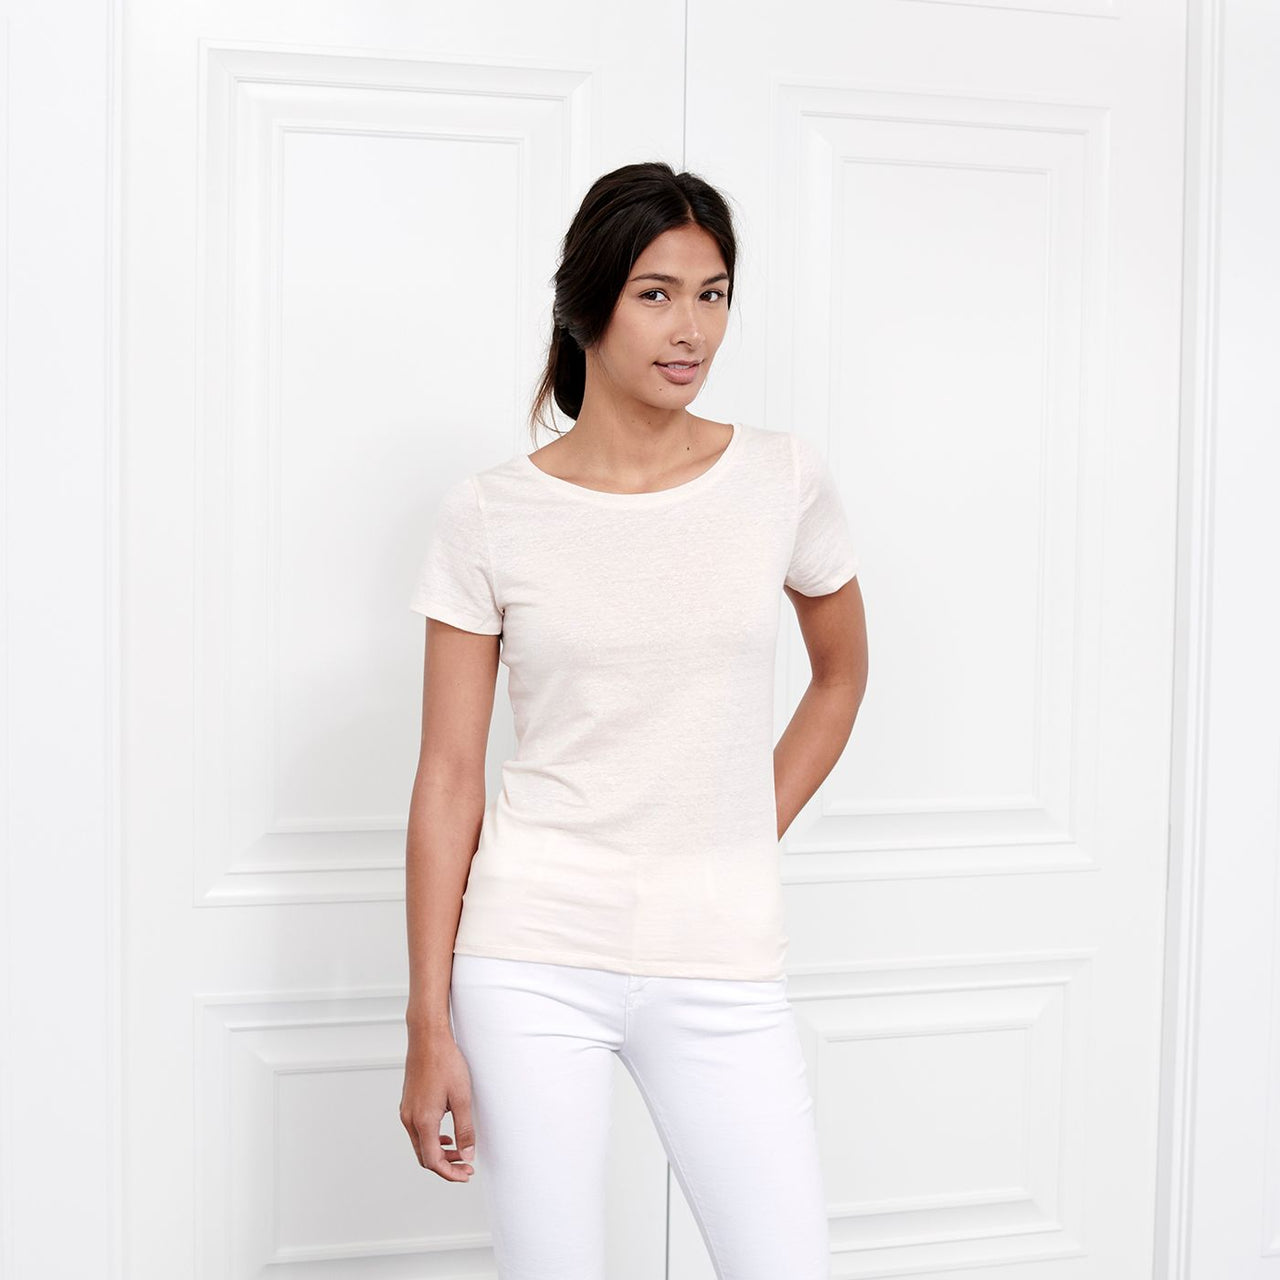 Resort Peach Linen Short Sleeve Tee with Scoop Neck